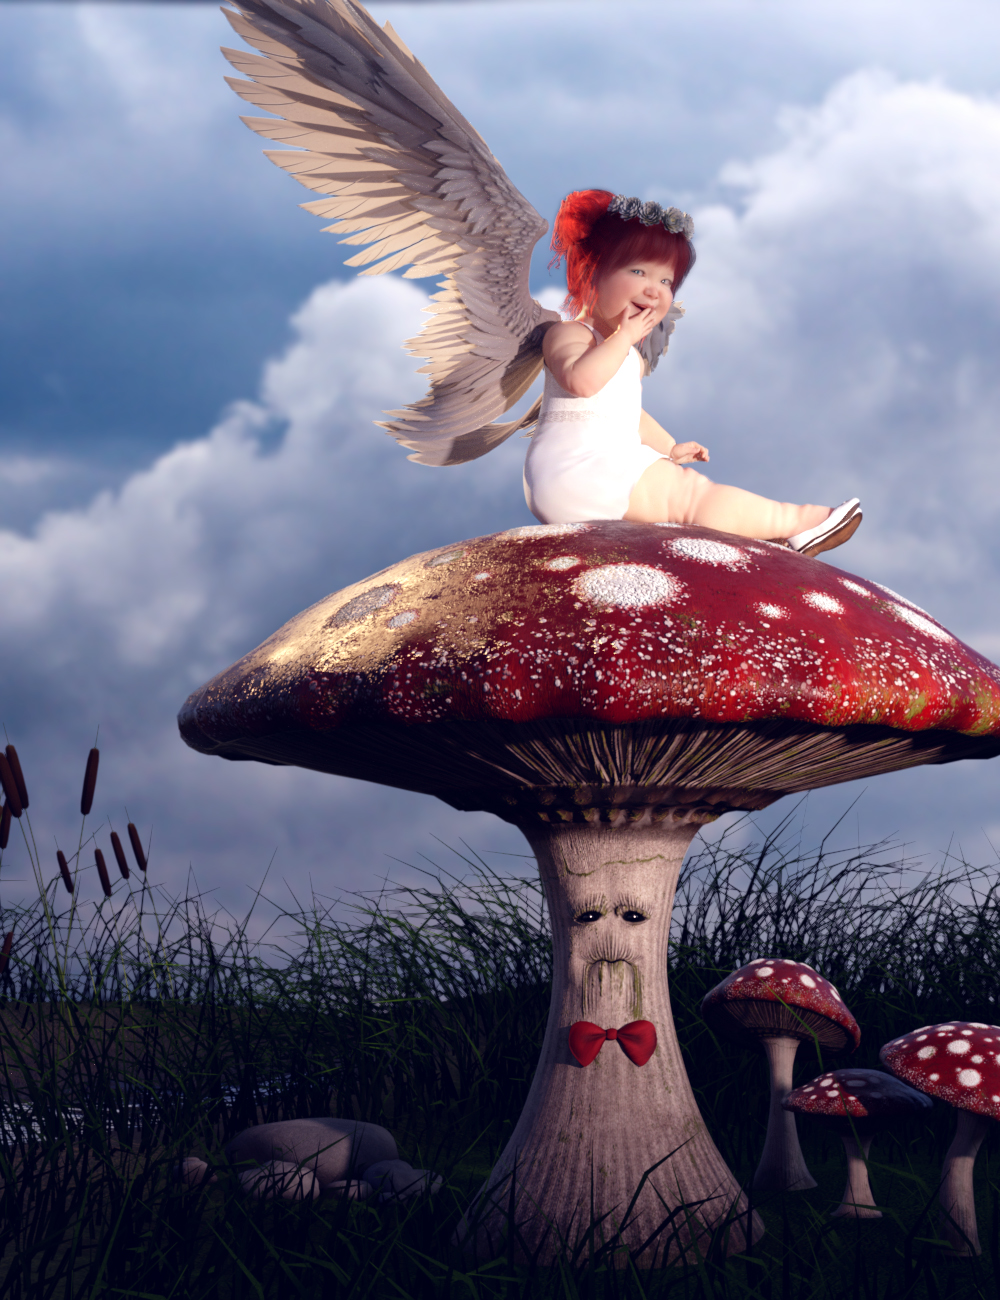 Mister Mushroom by: ARTCollaborations, 3D Models by Daz 3D